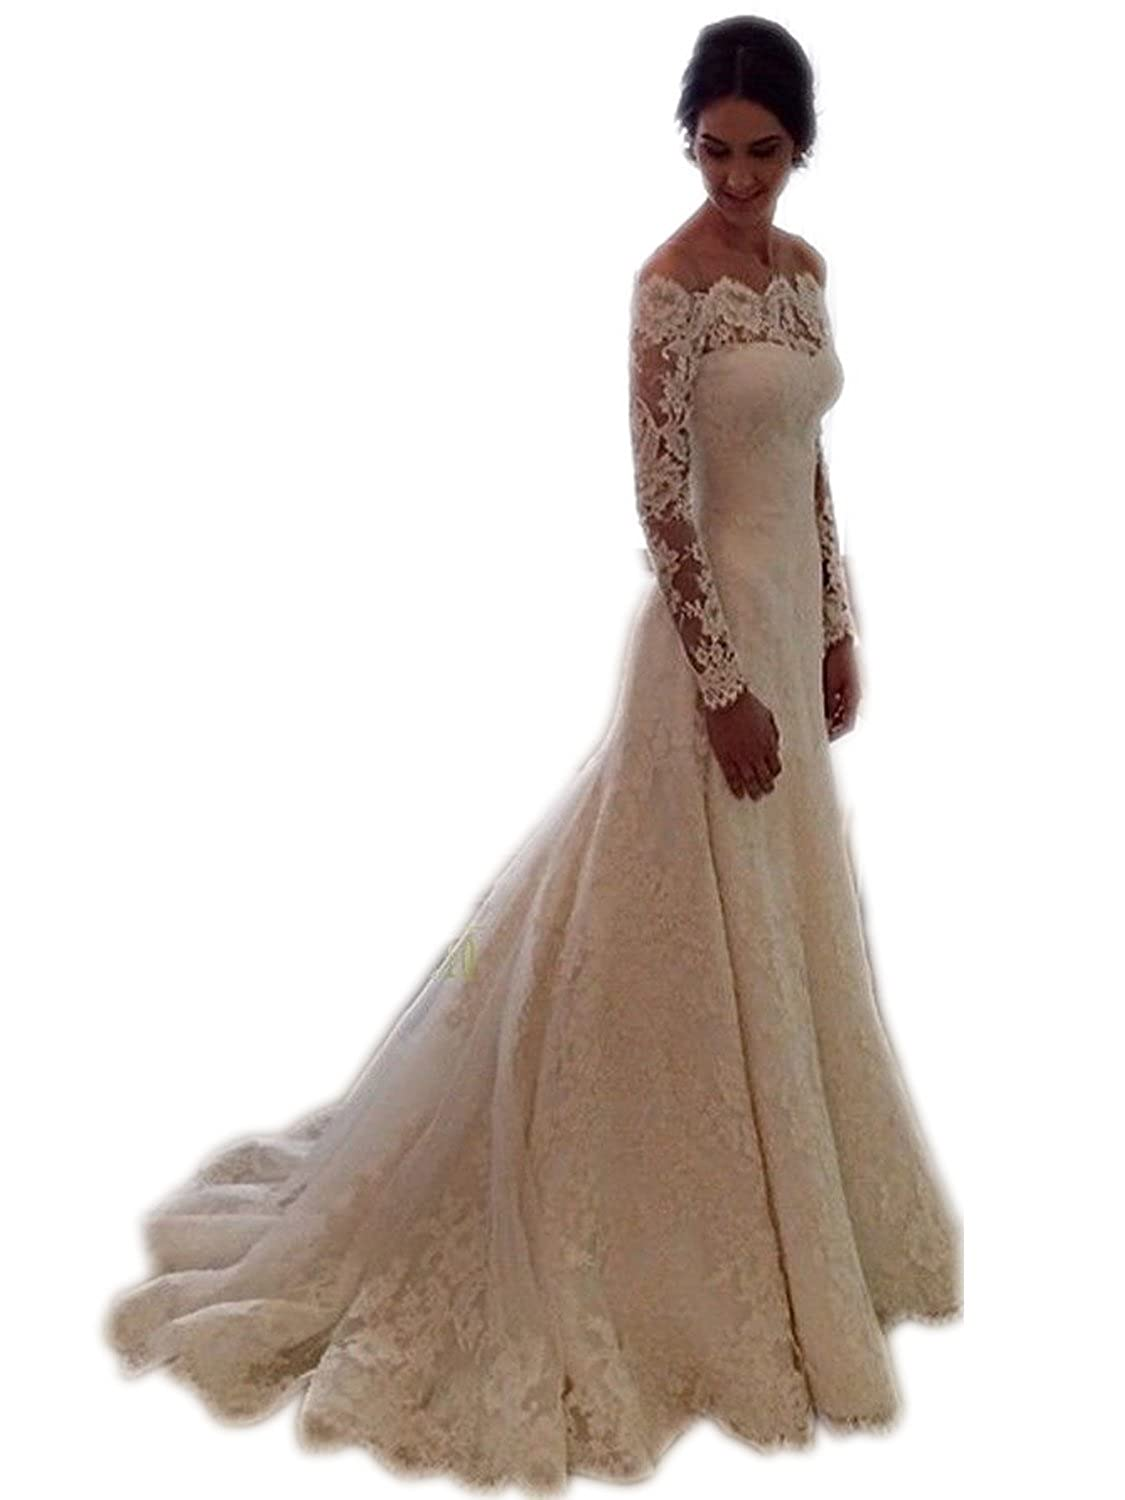 SDRESS Women's Off-The-Shoulder Long Sleeve Sweep Train Lace Bridal Wedding Dress